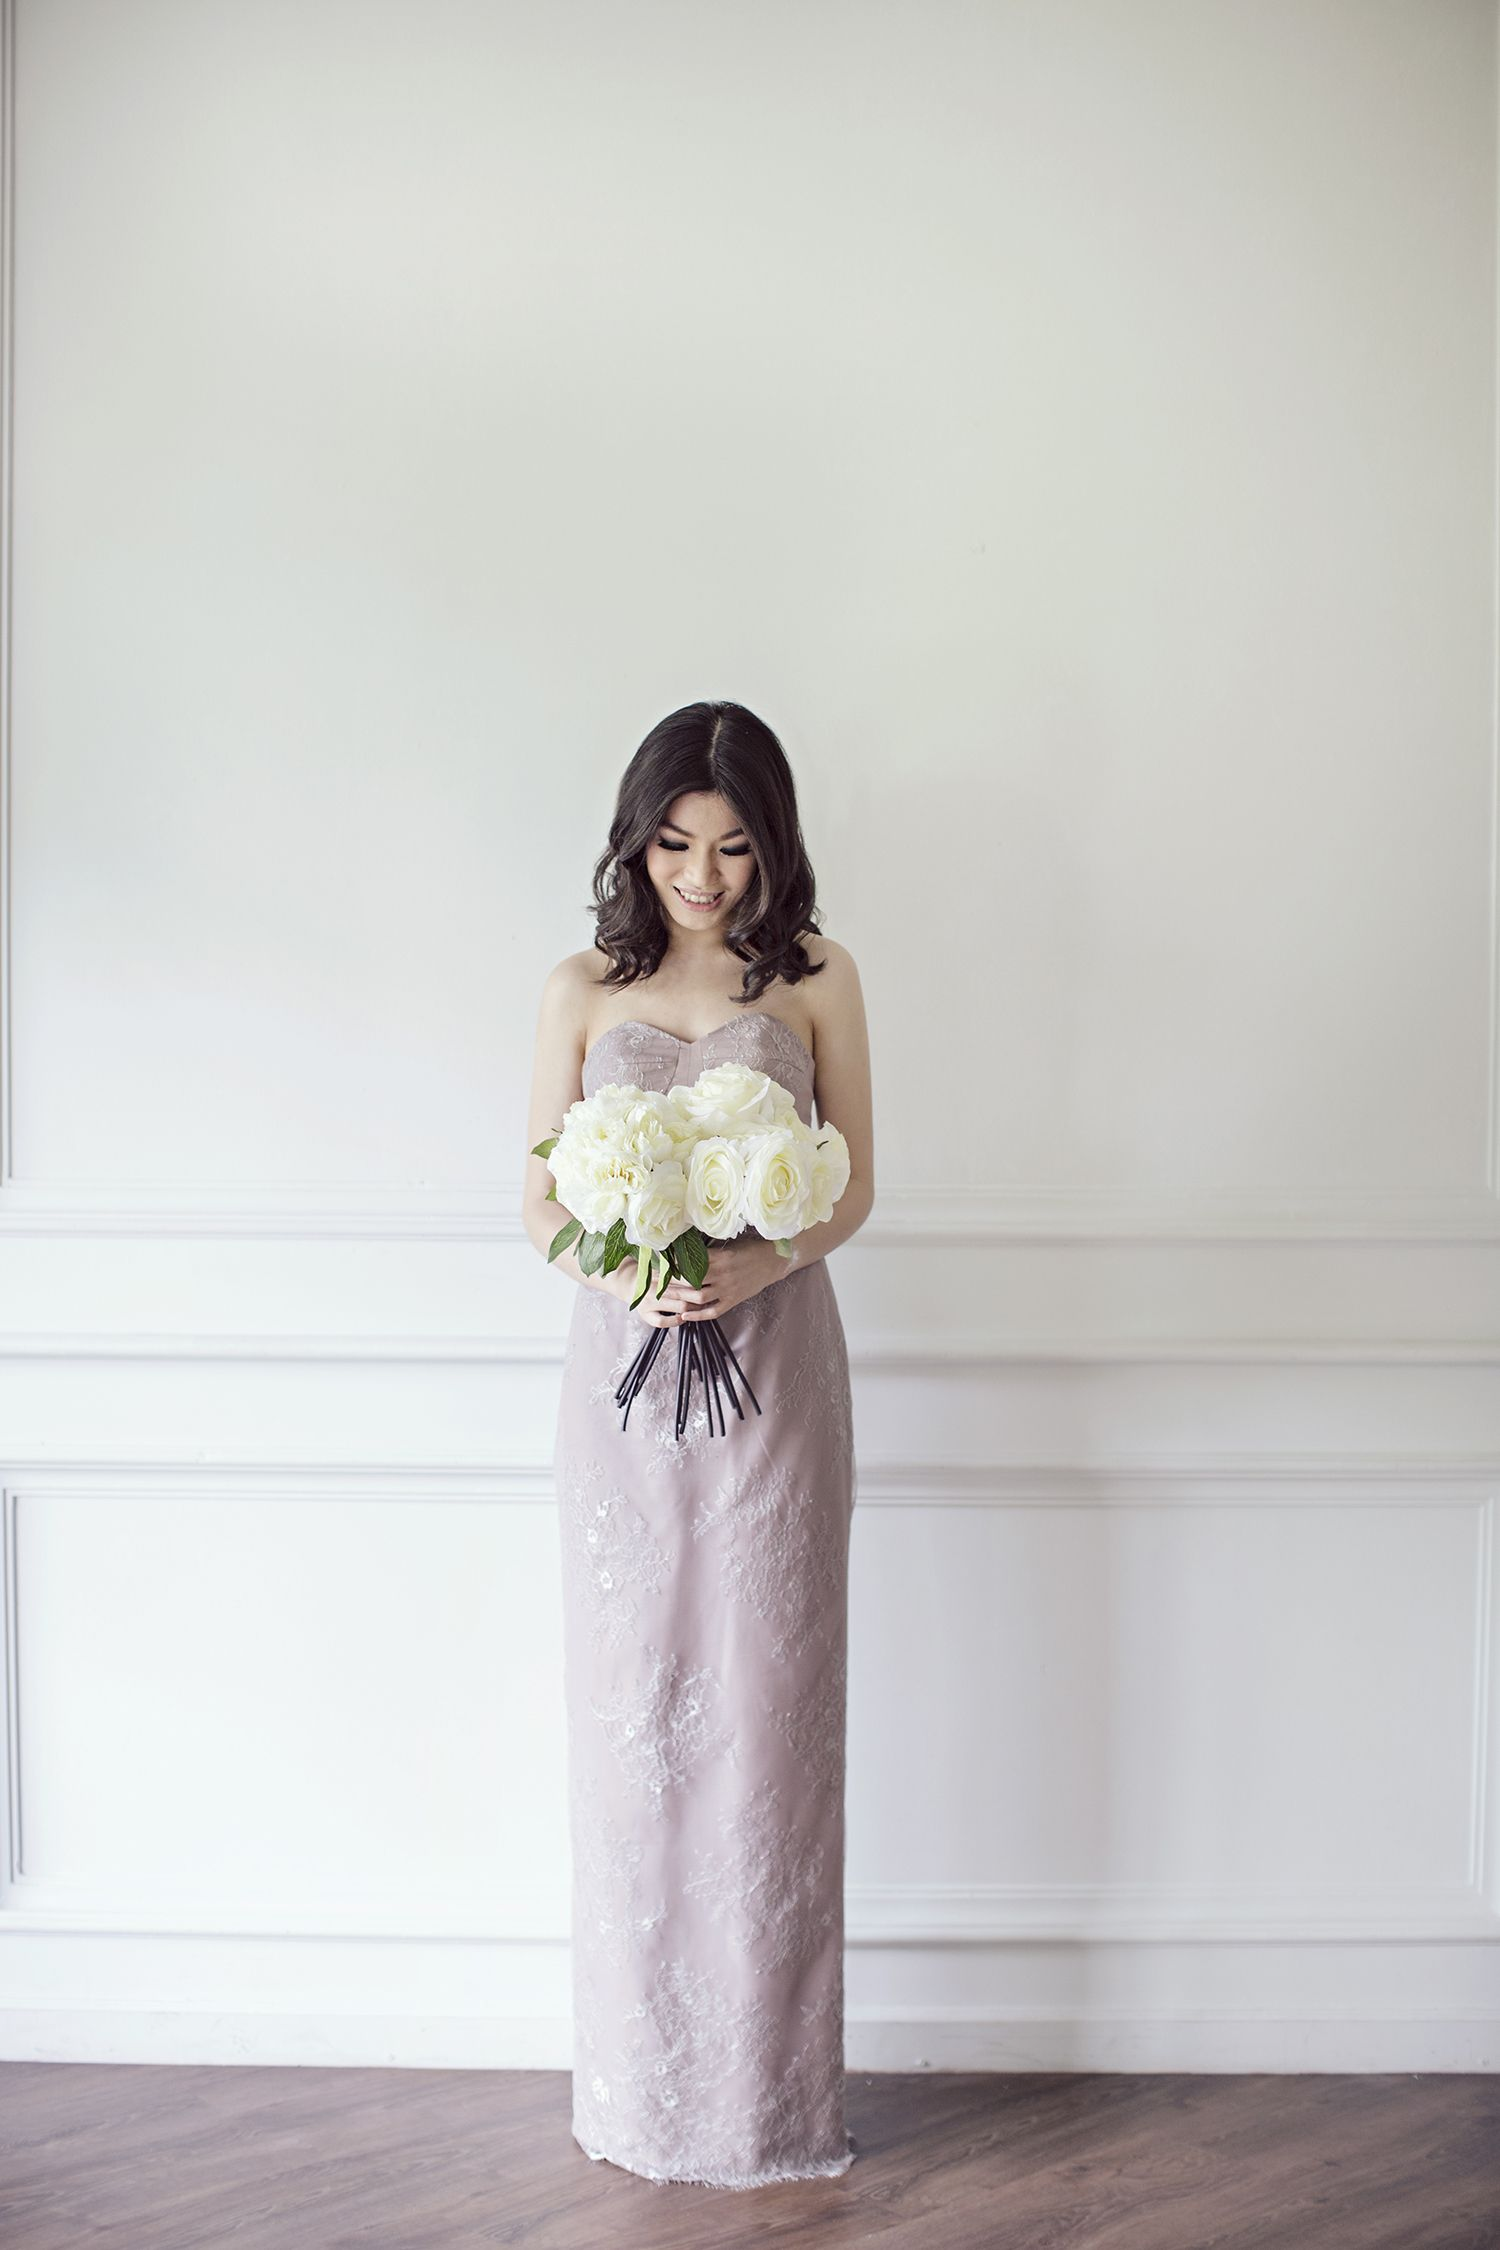 Lovely bridesmaids dress in pastel purple inspiring post by lovely bridesmaids dress in pastel purple inspiring post by bridestory everyone should ombrellifo Images